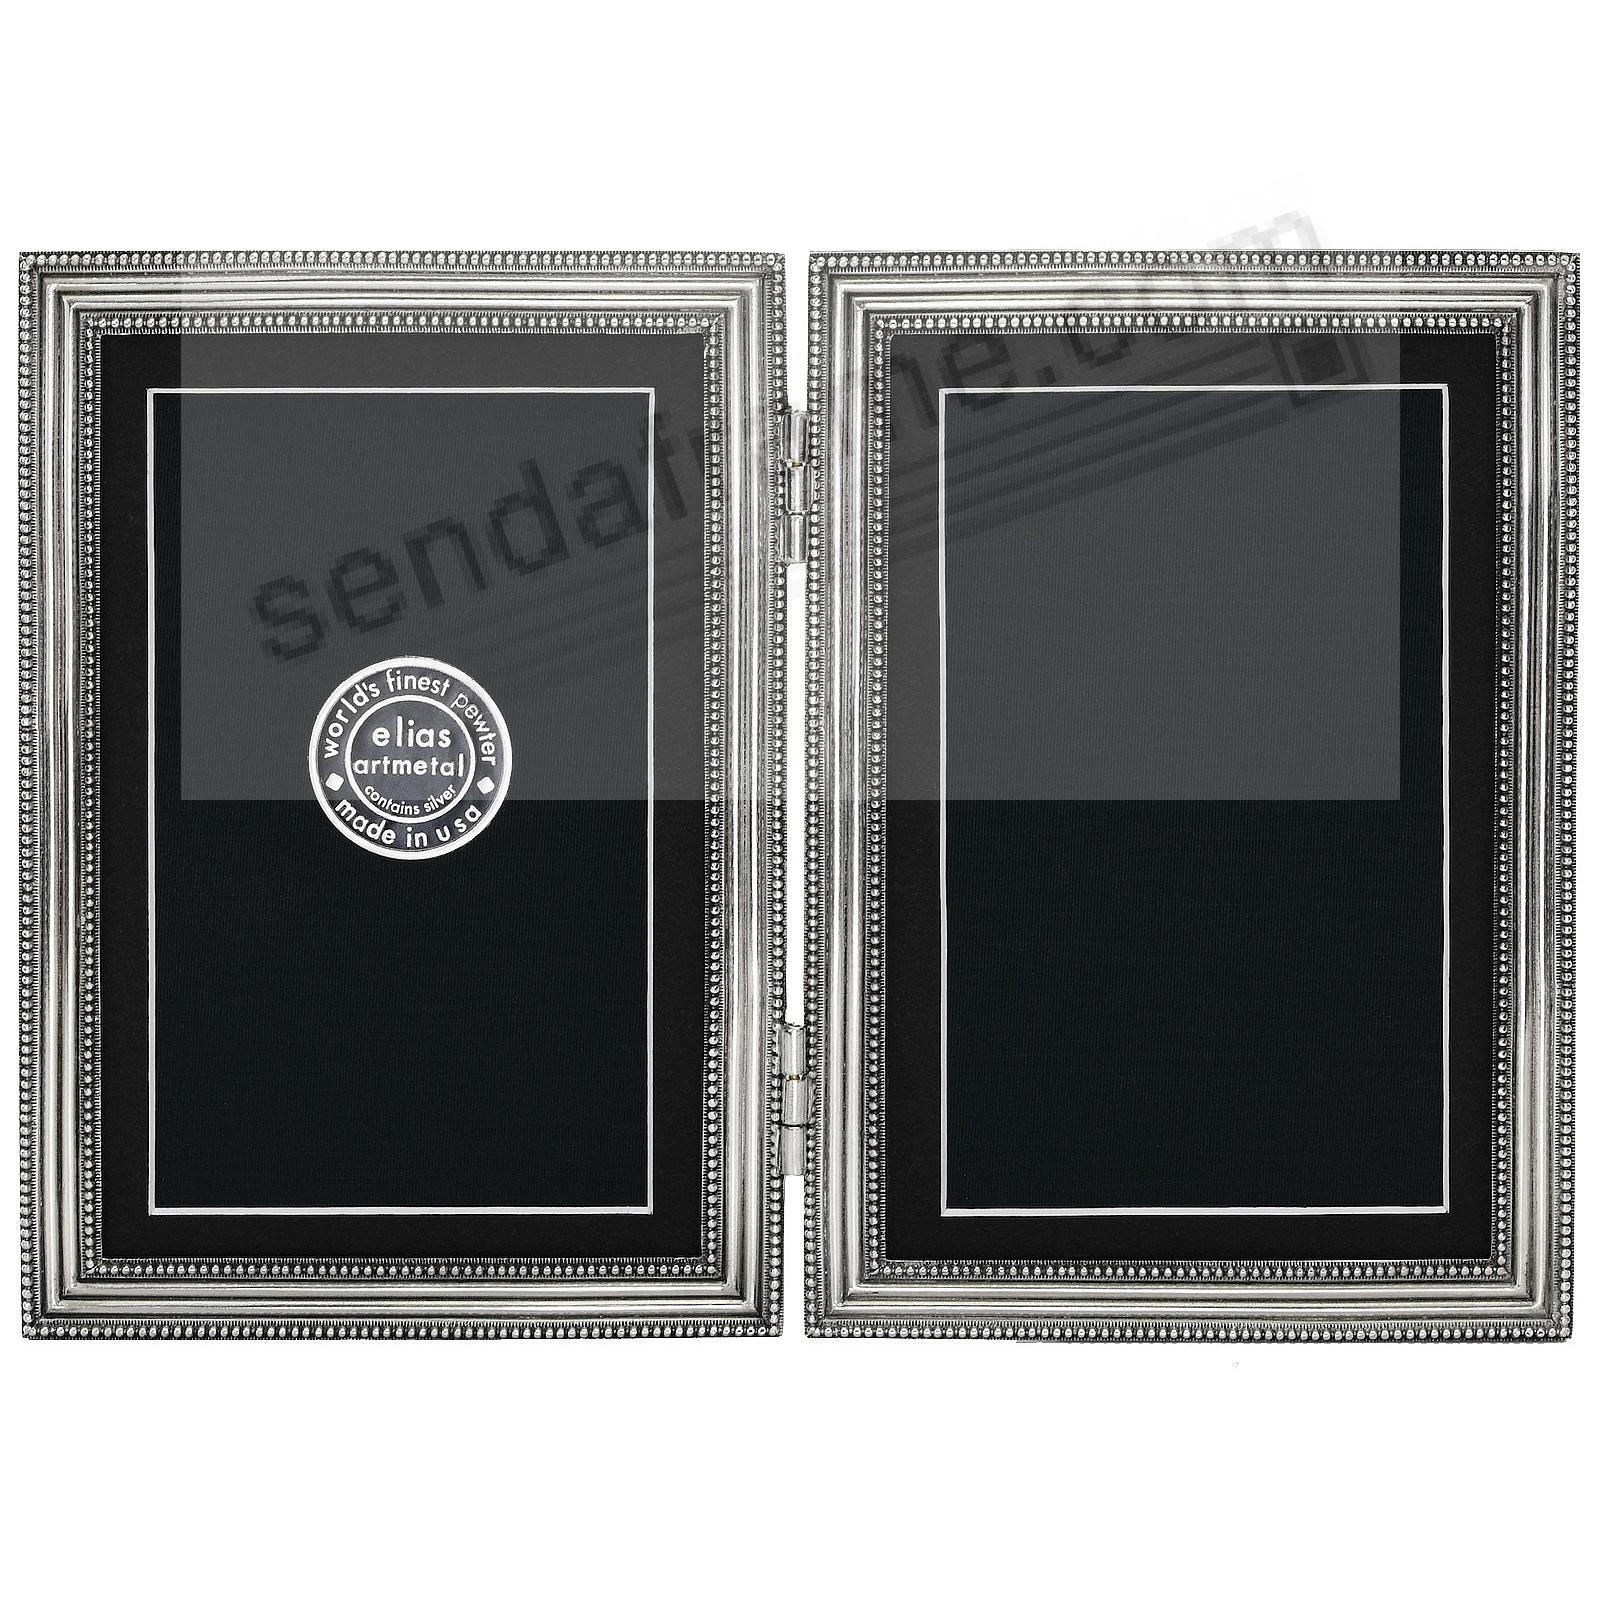 CLASSICO Fine Silvered Pewter Hinged 4x6/3½x5 Double by Elias Artmetal®